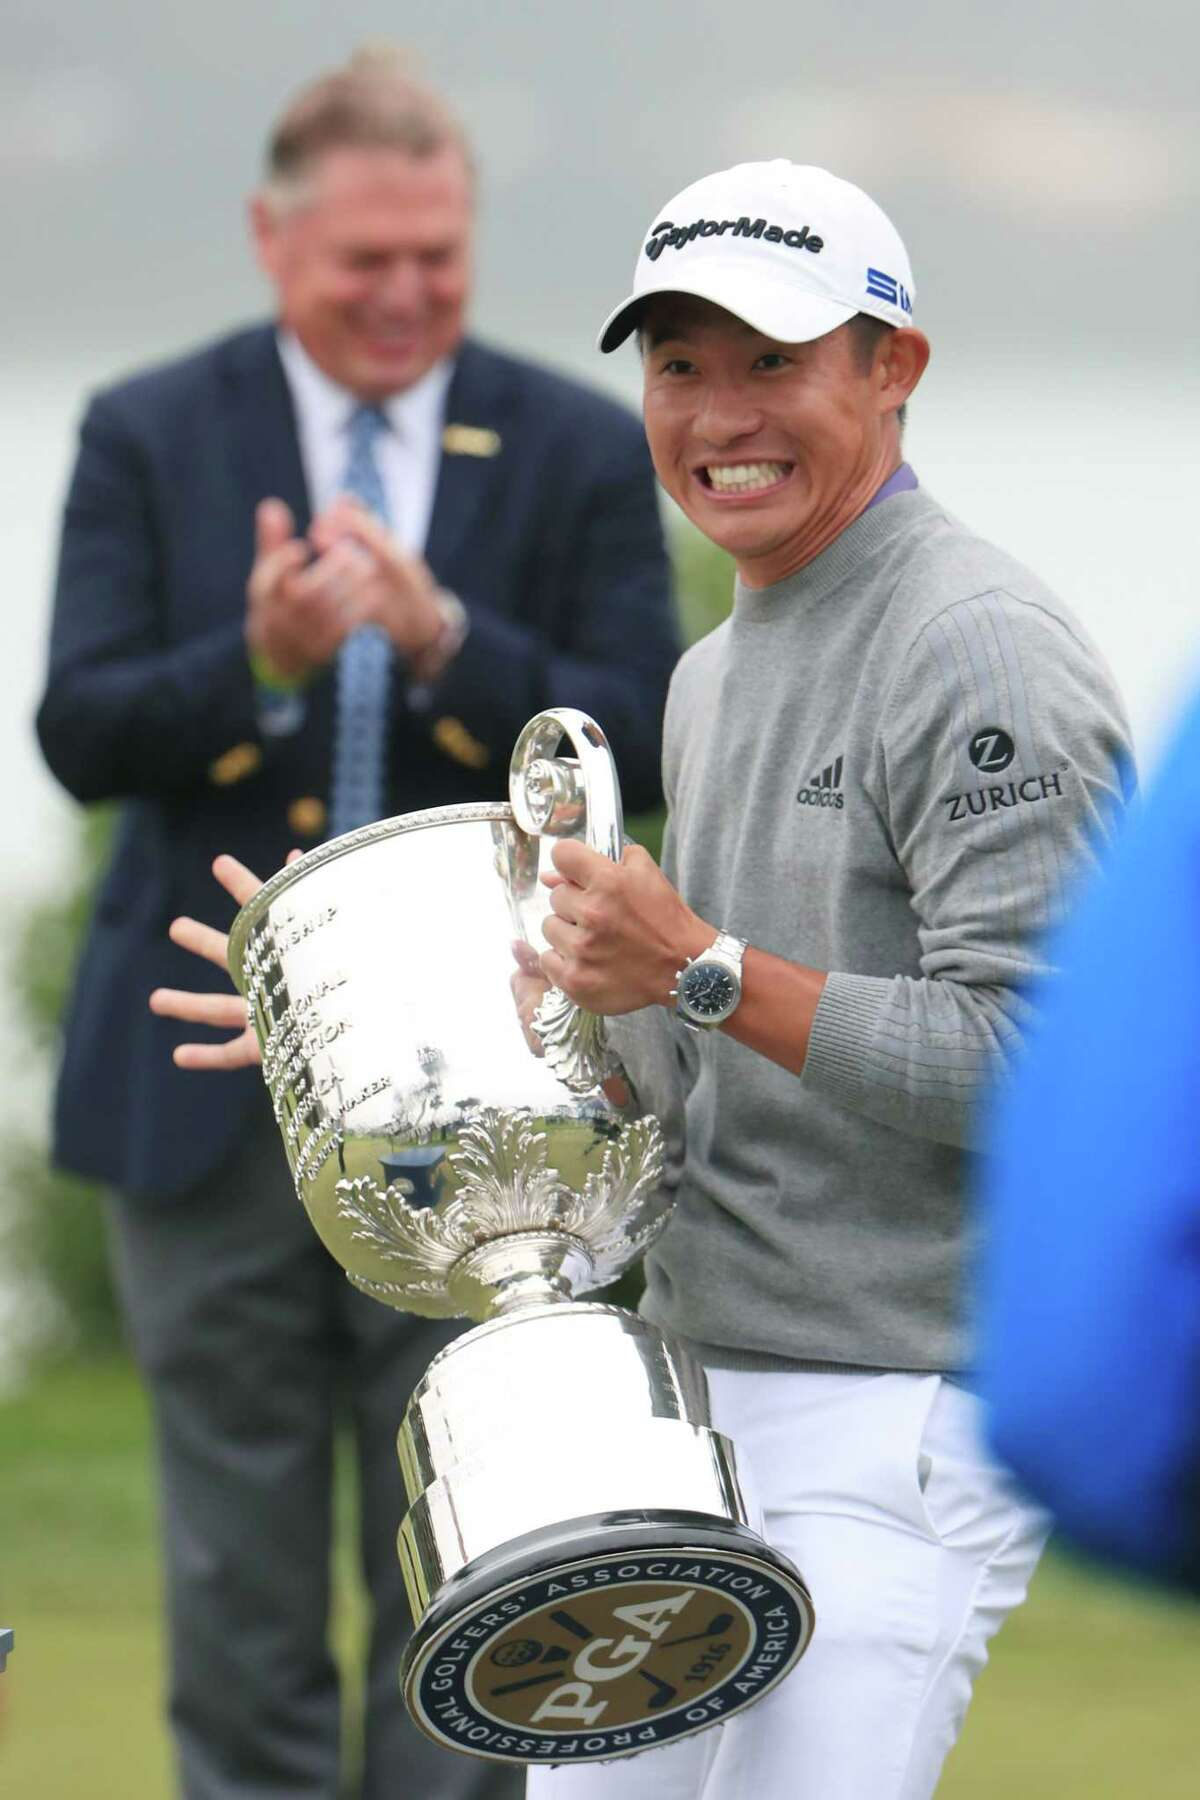 SAN FRANCISCO, CALIFORNIA - AUGUST 09: Collin Morikawa of the United States reacts after the lid to the Wanamaker Trophy fell off during the trophy presentation after the final round of the 2020 PGA Championship at TPC Harding Park on August 09, 2020 in San Francisco, California. (Photo by Tom Pennington/Getty Images)